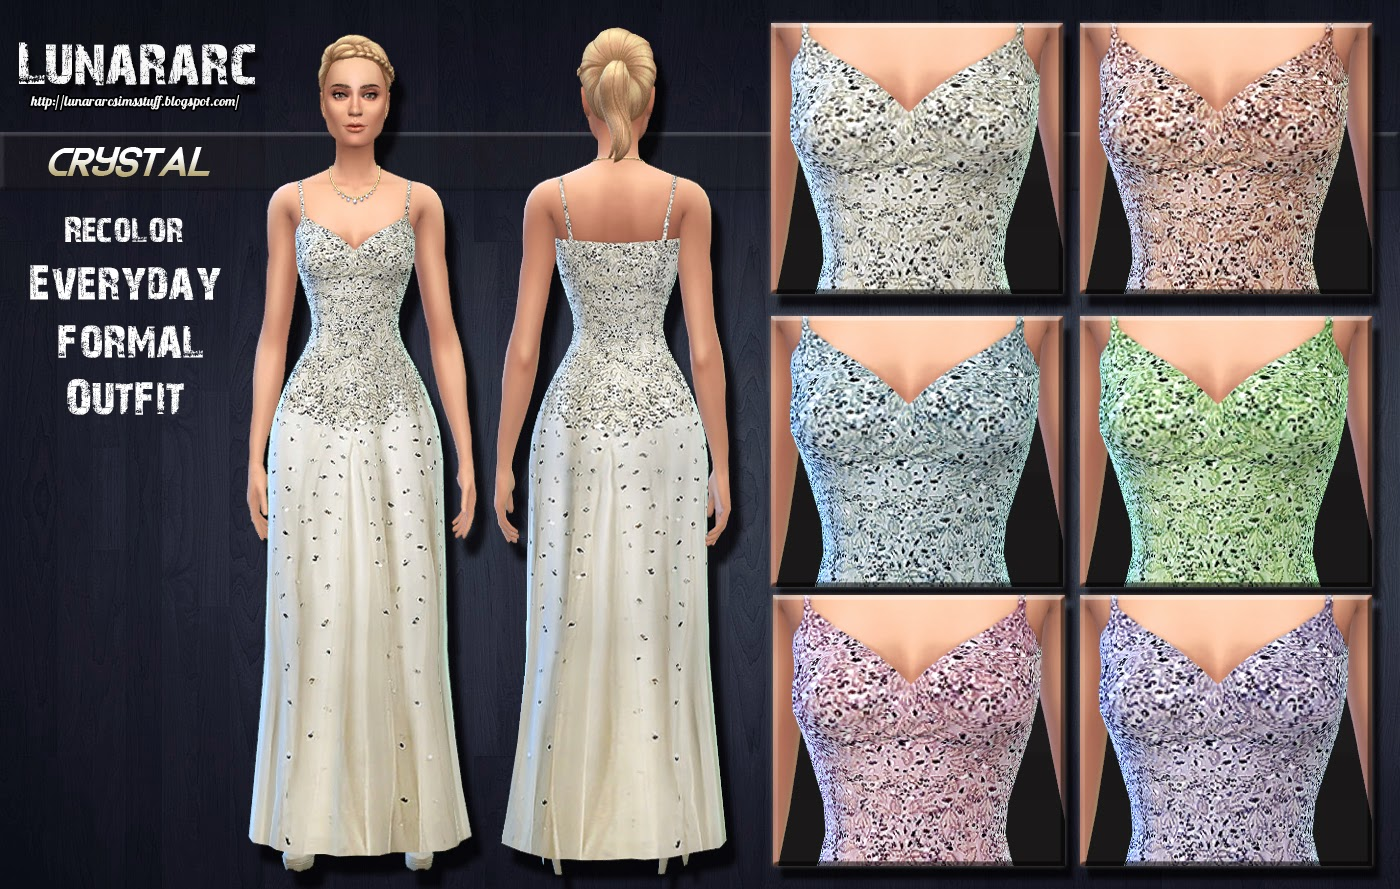 Crystal Beaded Wedding Dress By Lunararc at Lunararc